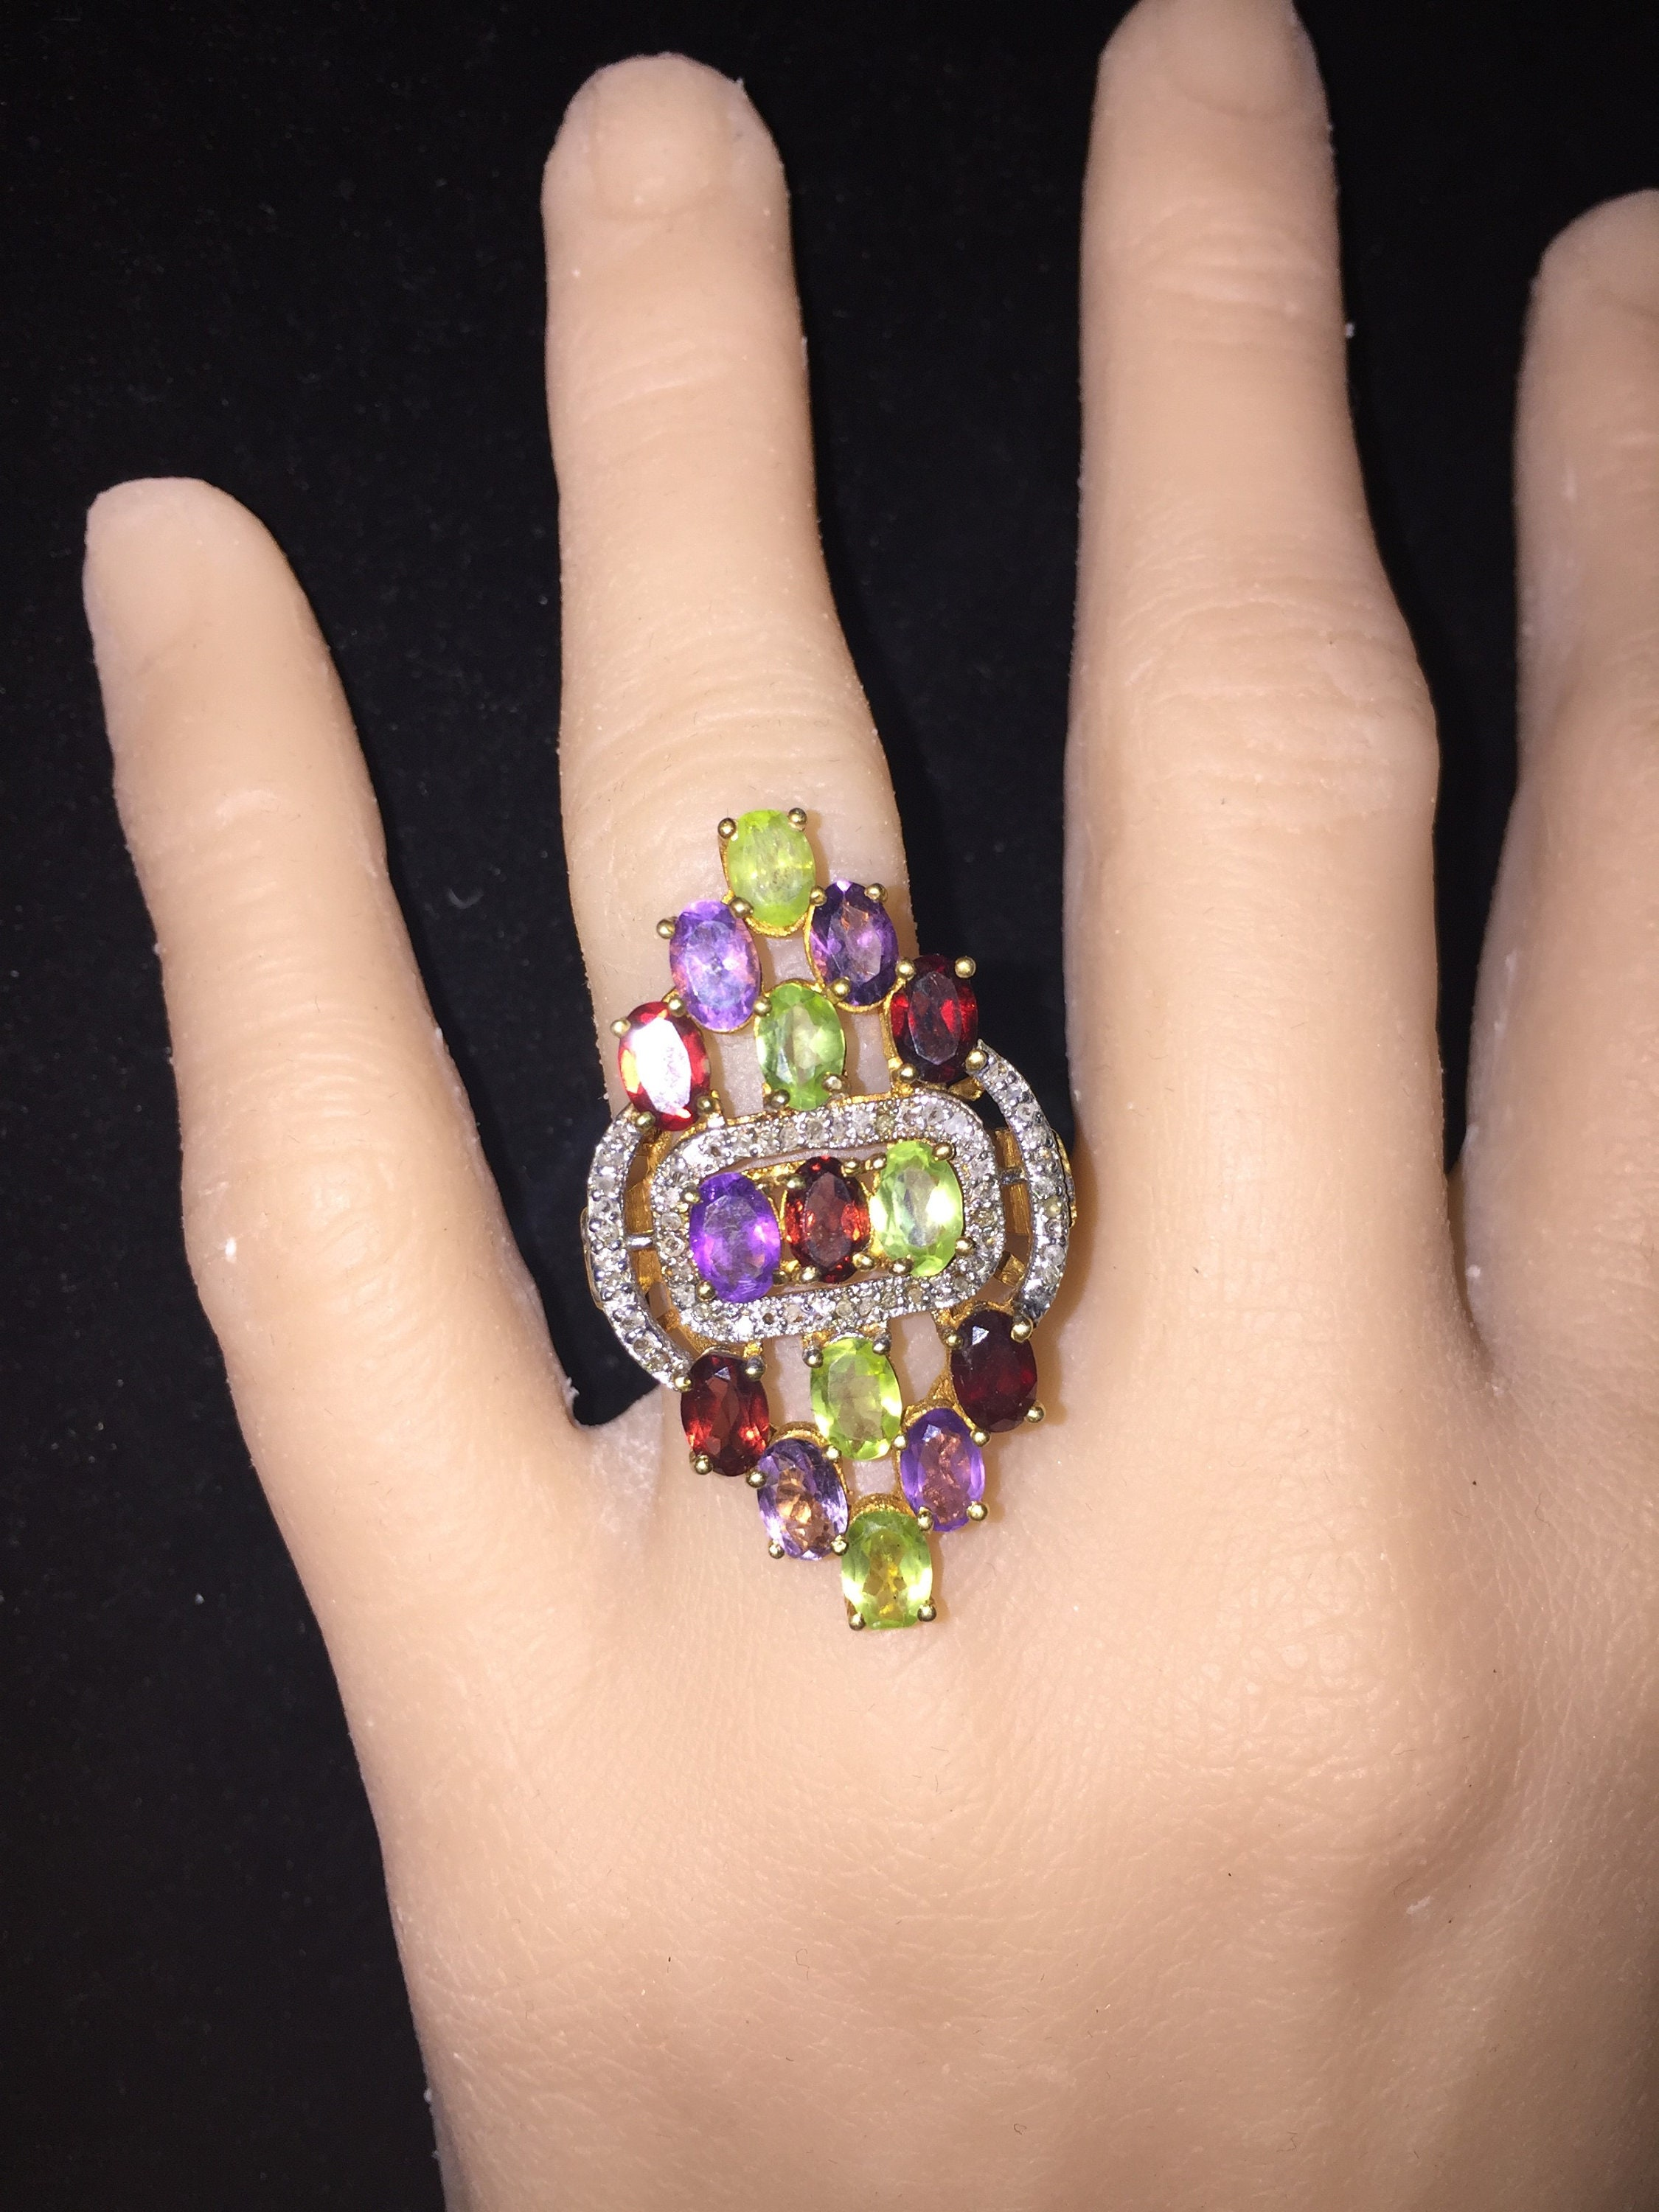 Sale Size 9 Handcrafted 13ct Amethyst Peridot Garnet 125ct Natural Golden Orange Citrine Zoom